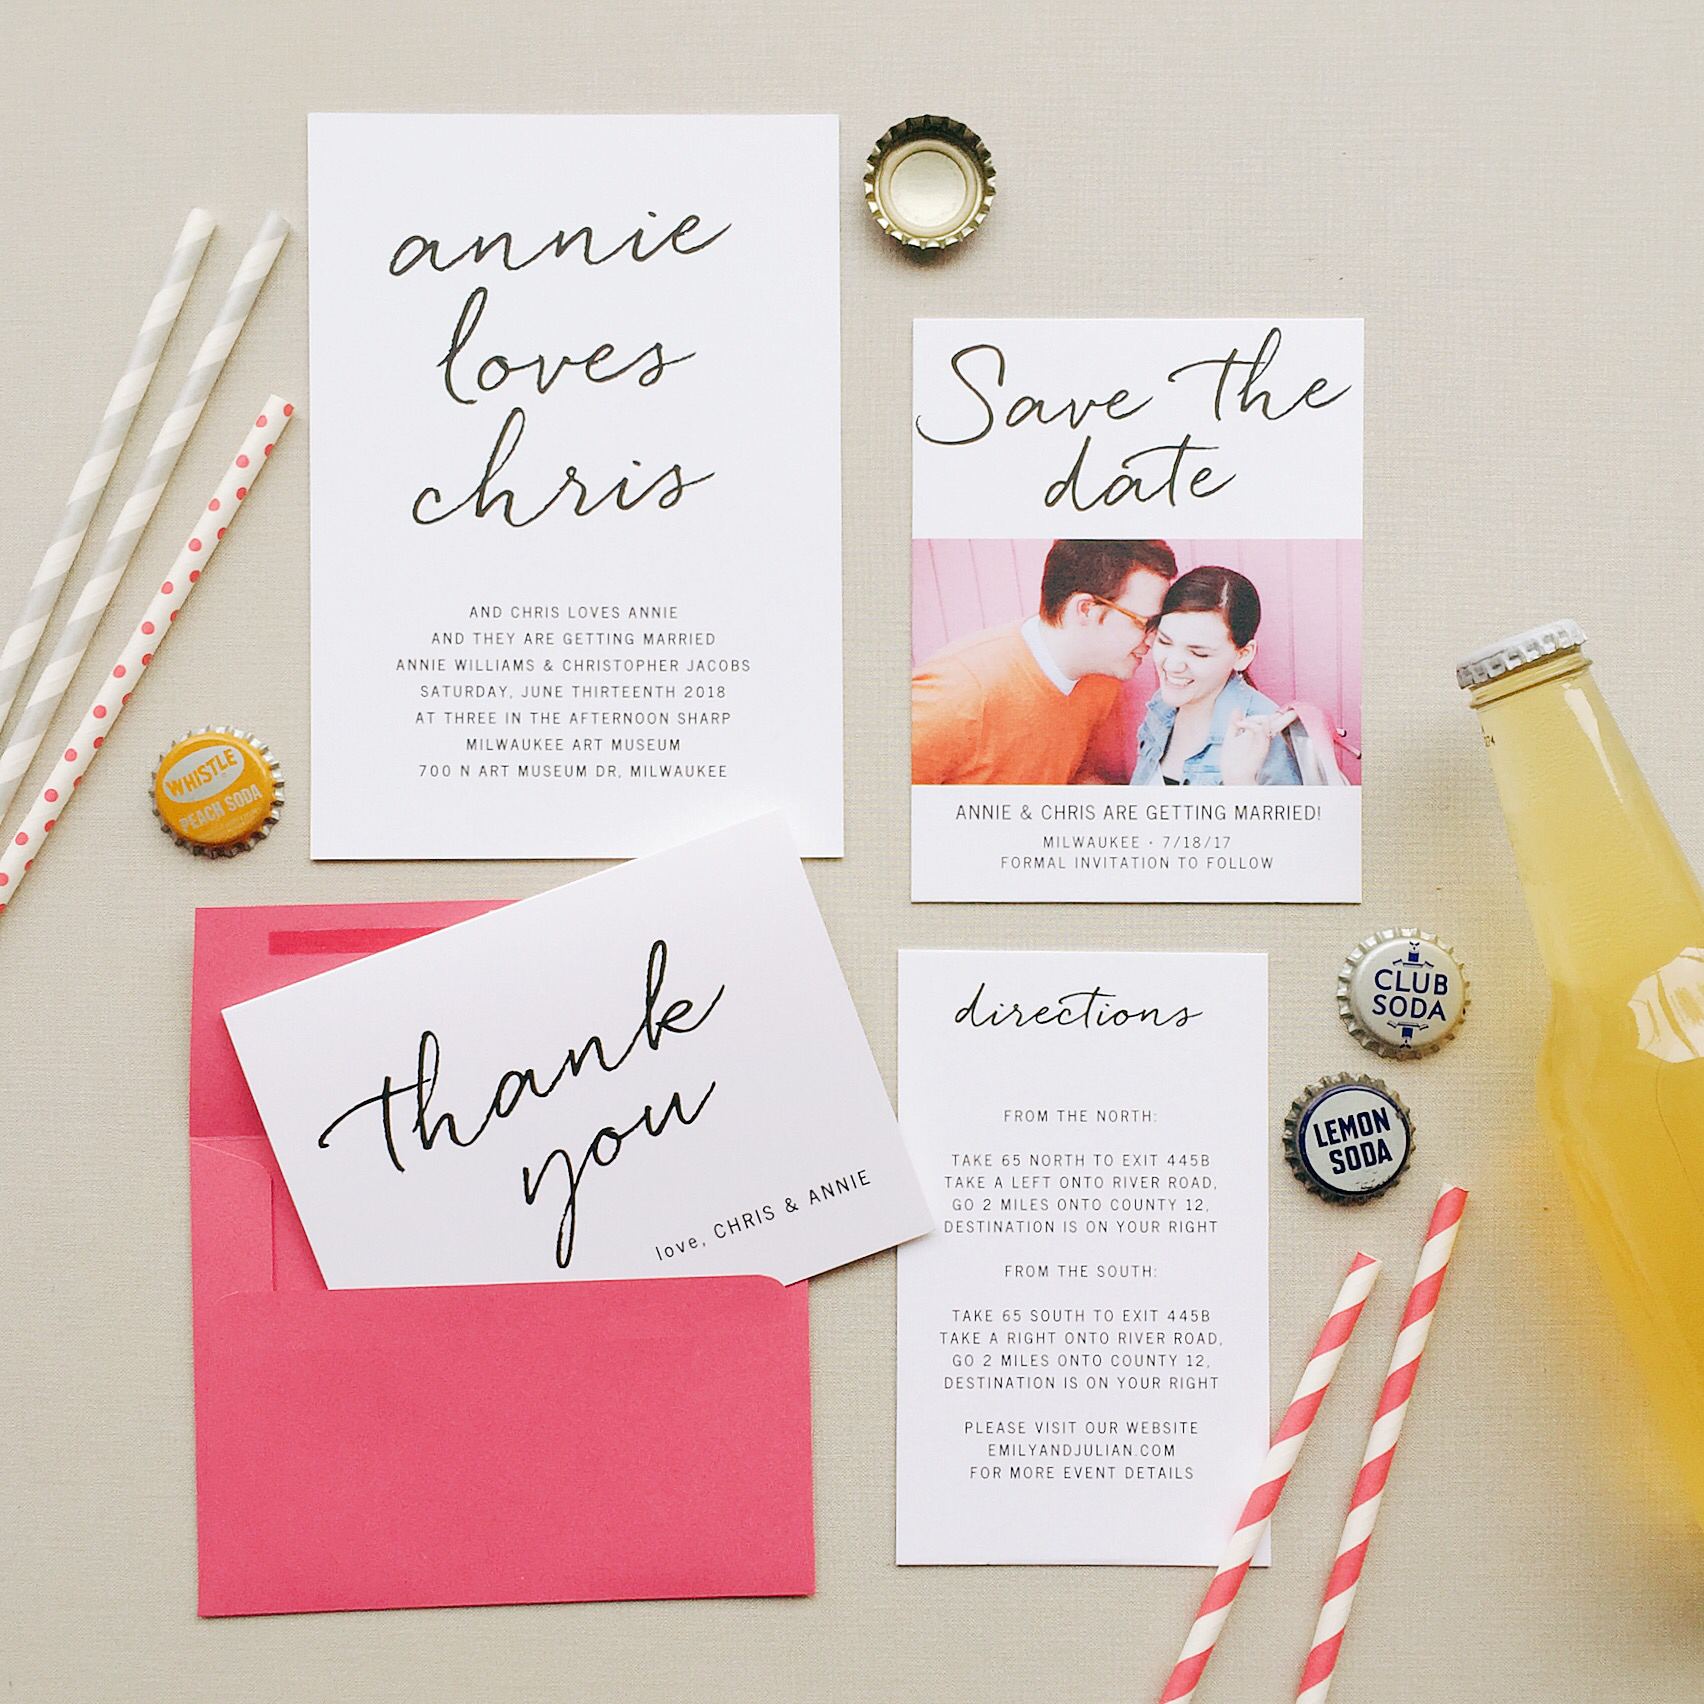 Basic Invite: Custom Invites for your Wedding! - Dawn Temple Photography